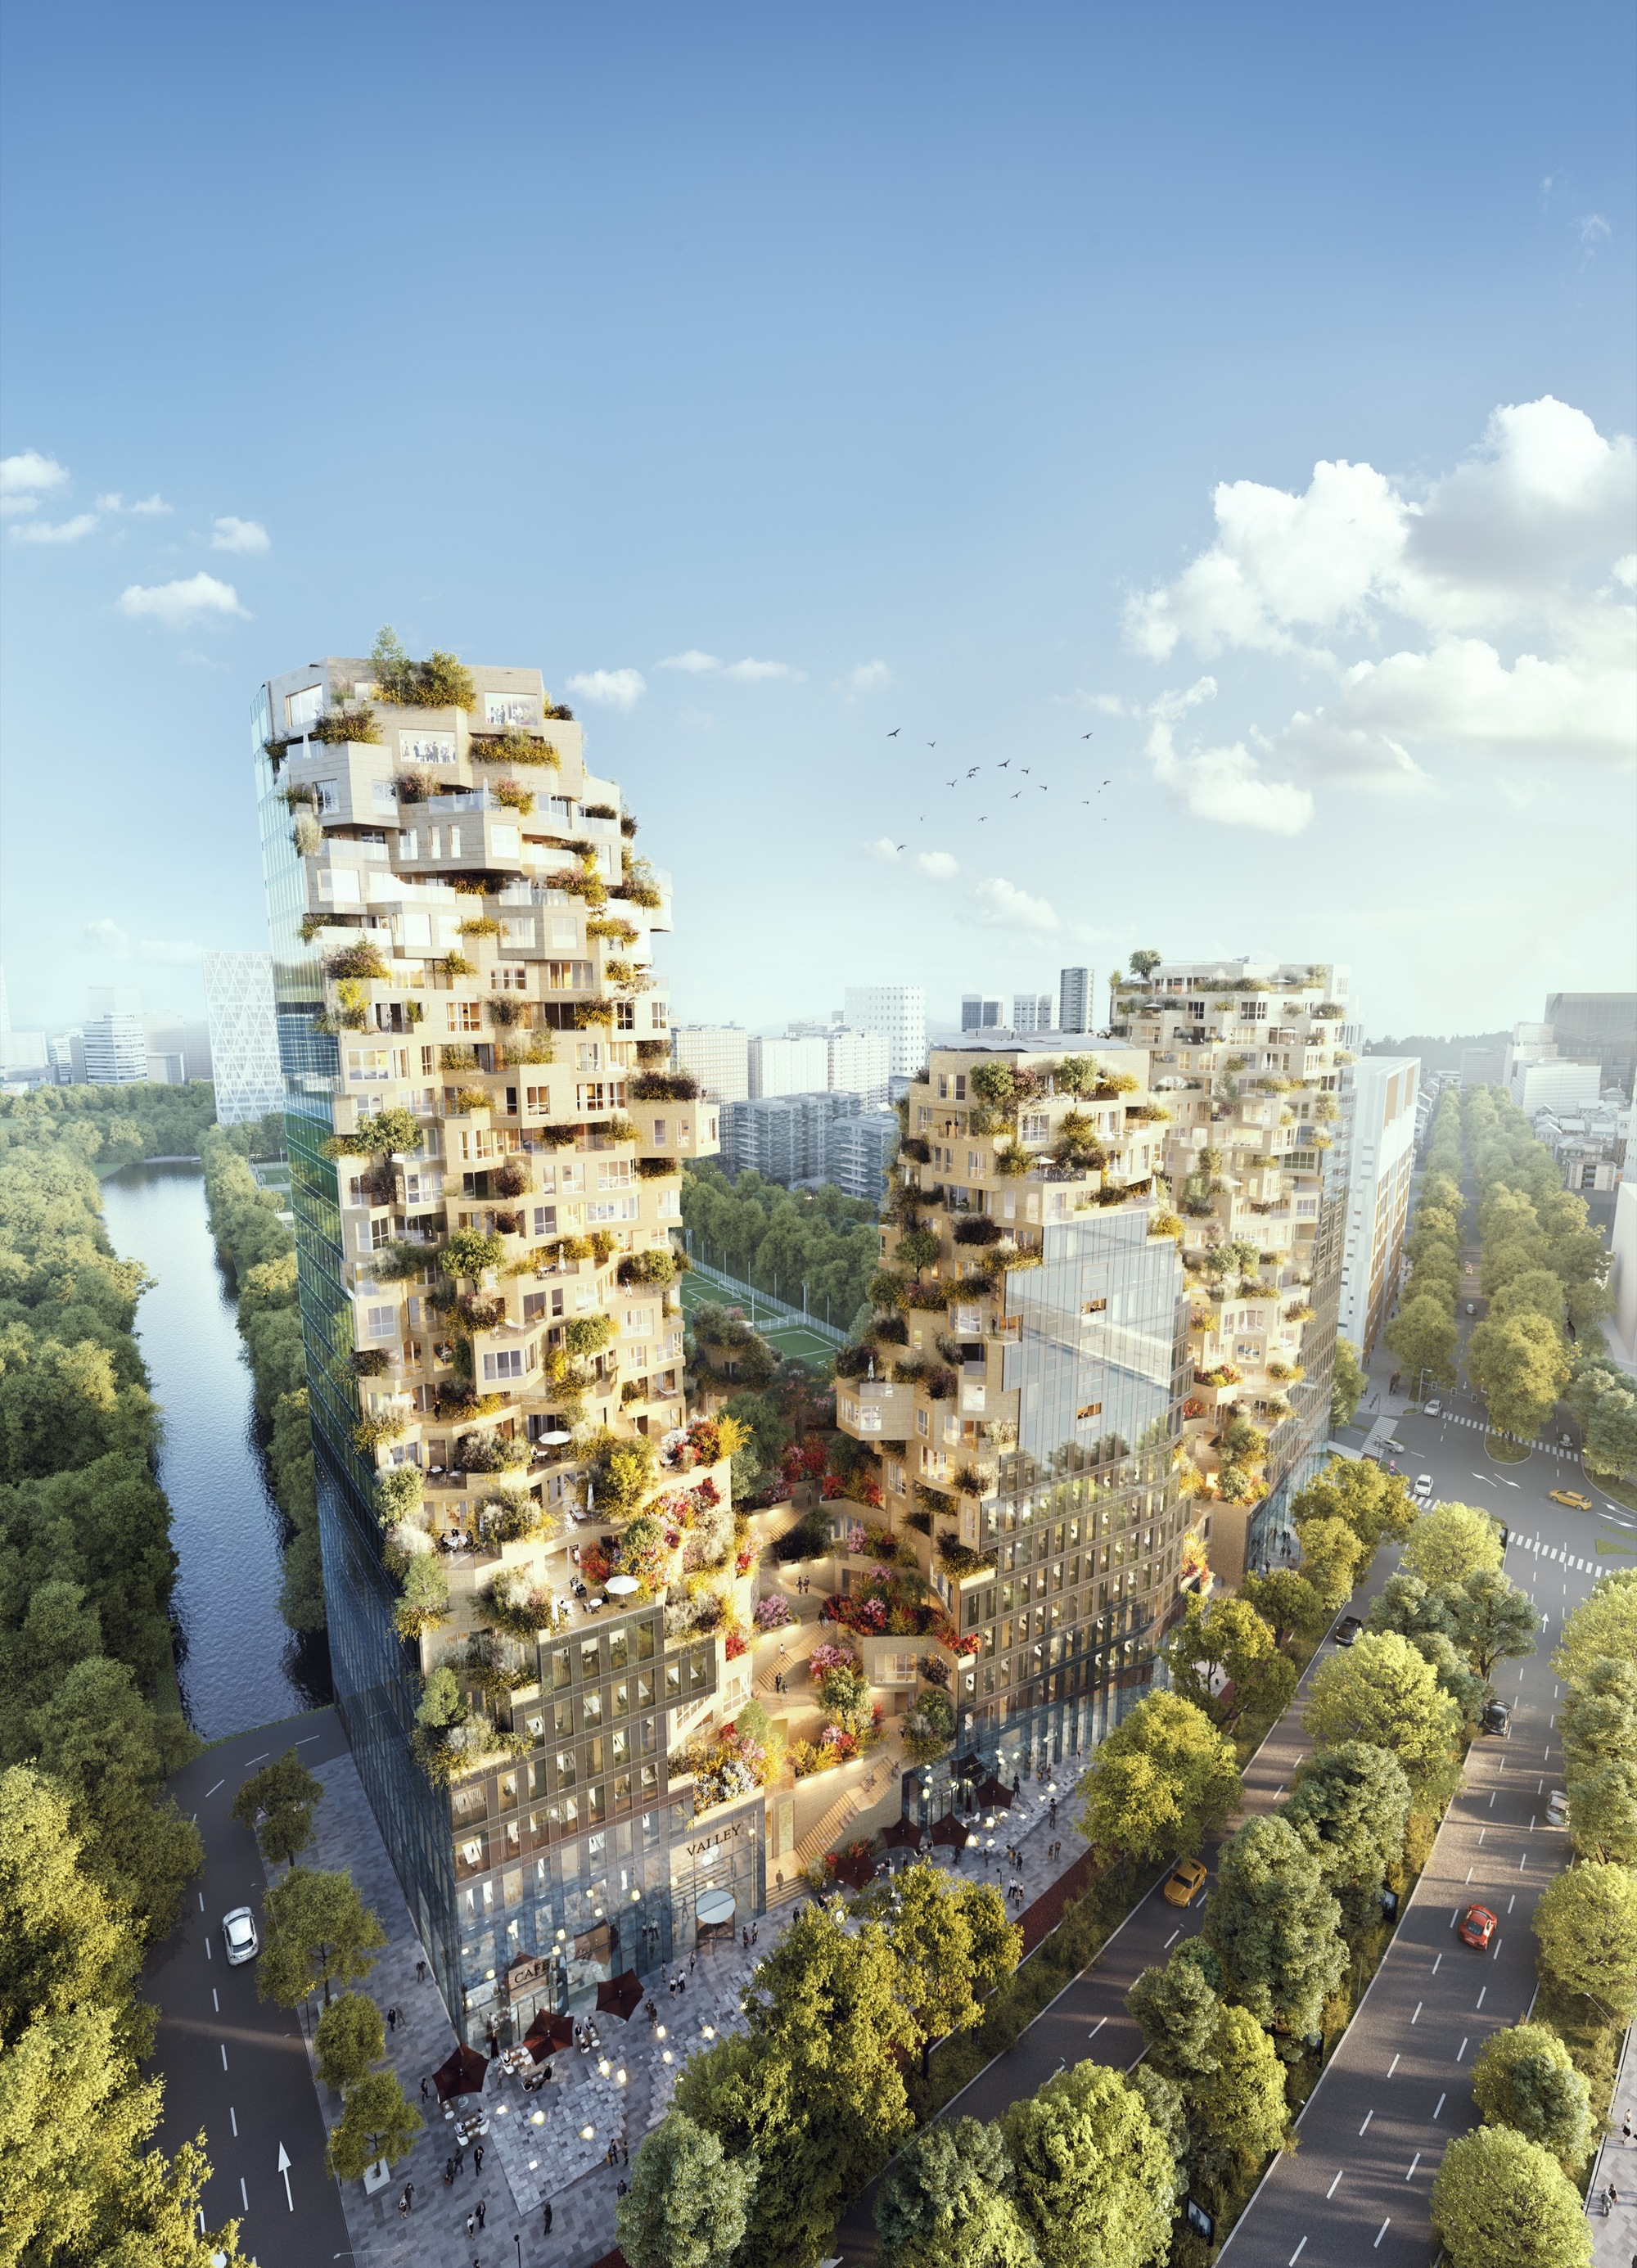 MVRDV Breaks Ground on MixedUse Valley to Inject Life